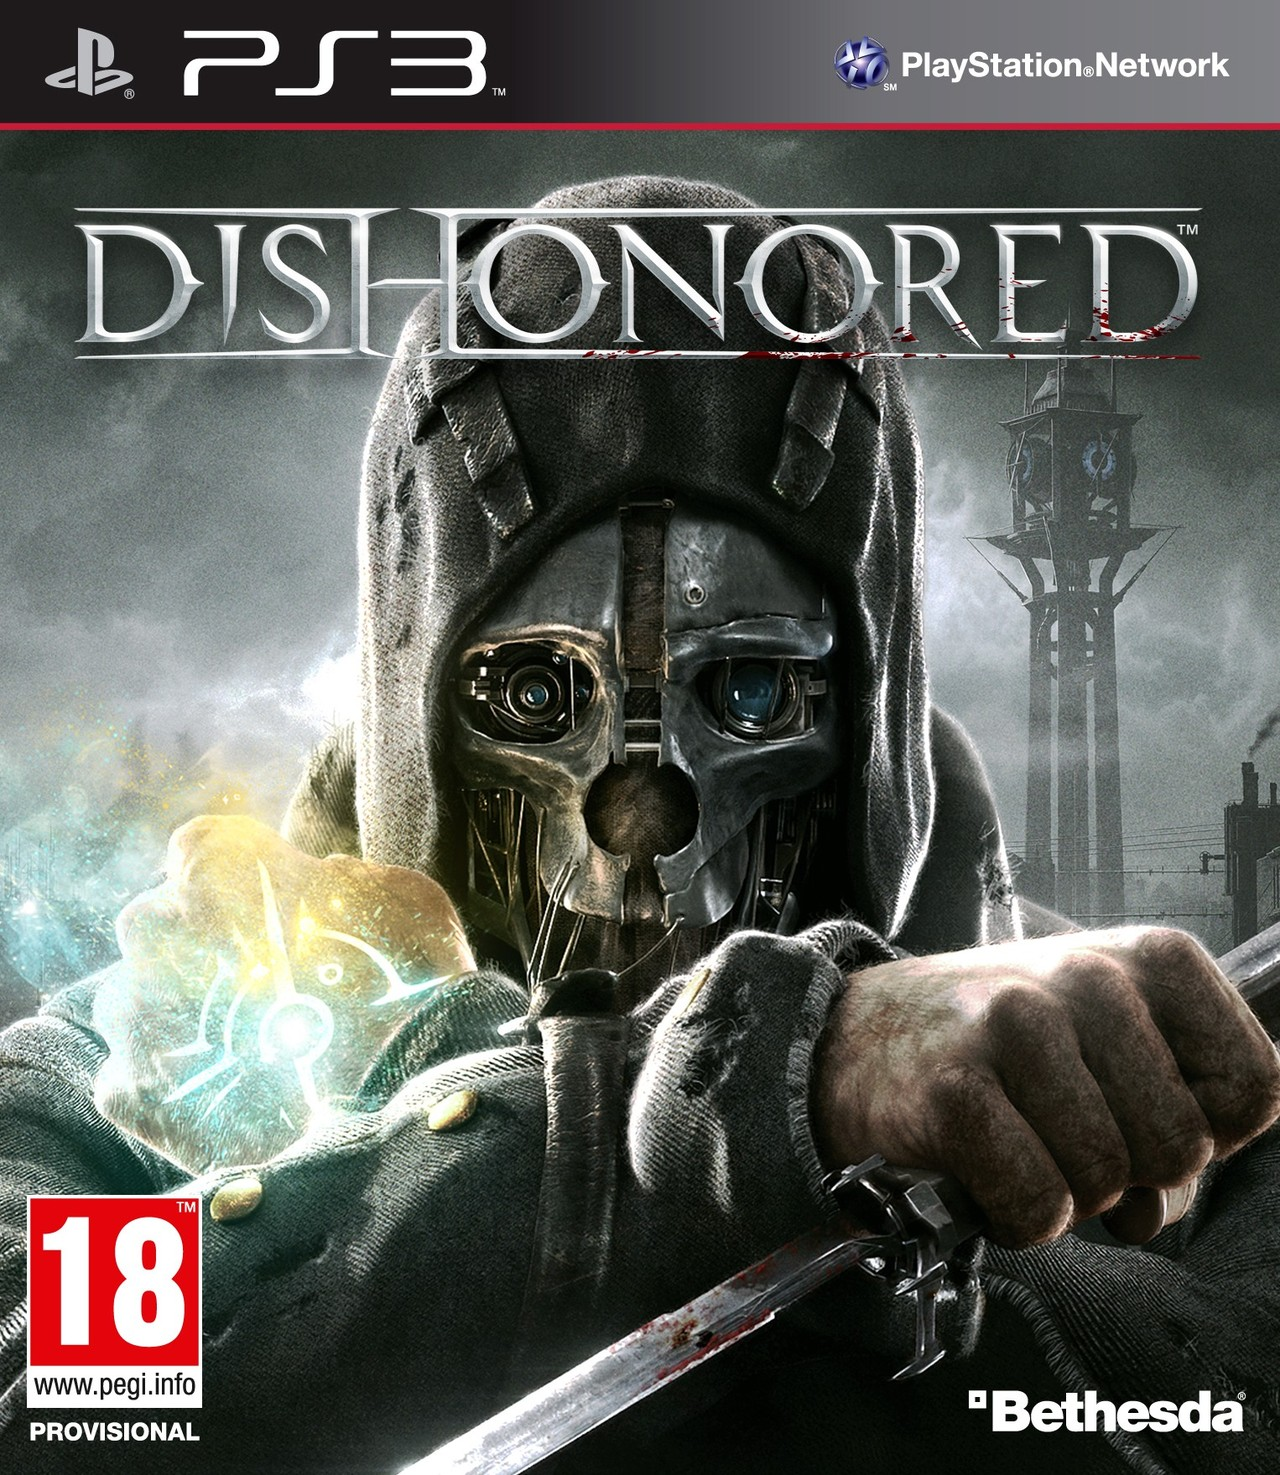 https://i1.wp.com/image.jeuxvideo.com/images/jaquettes/00041409/jaquette-dishonored-playstation-3-ps3-cover-avant-g-1336660359.jpg